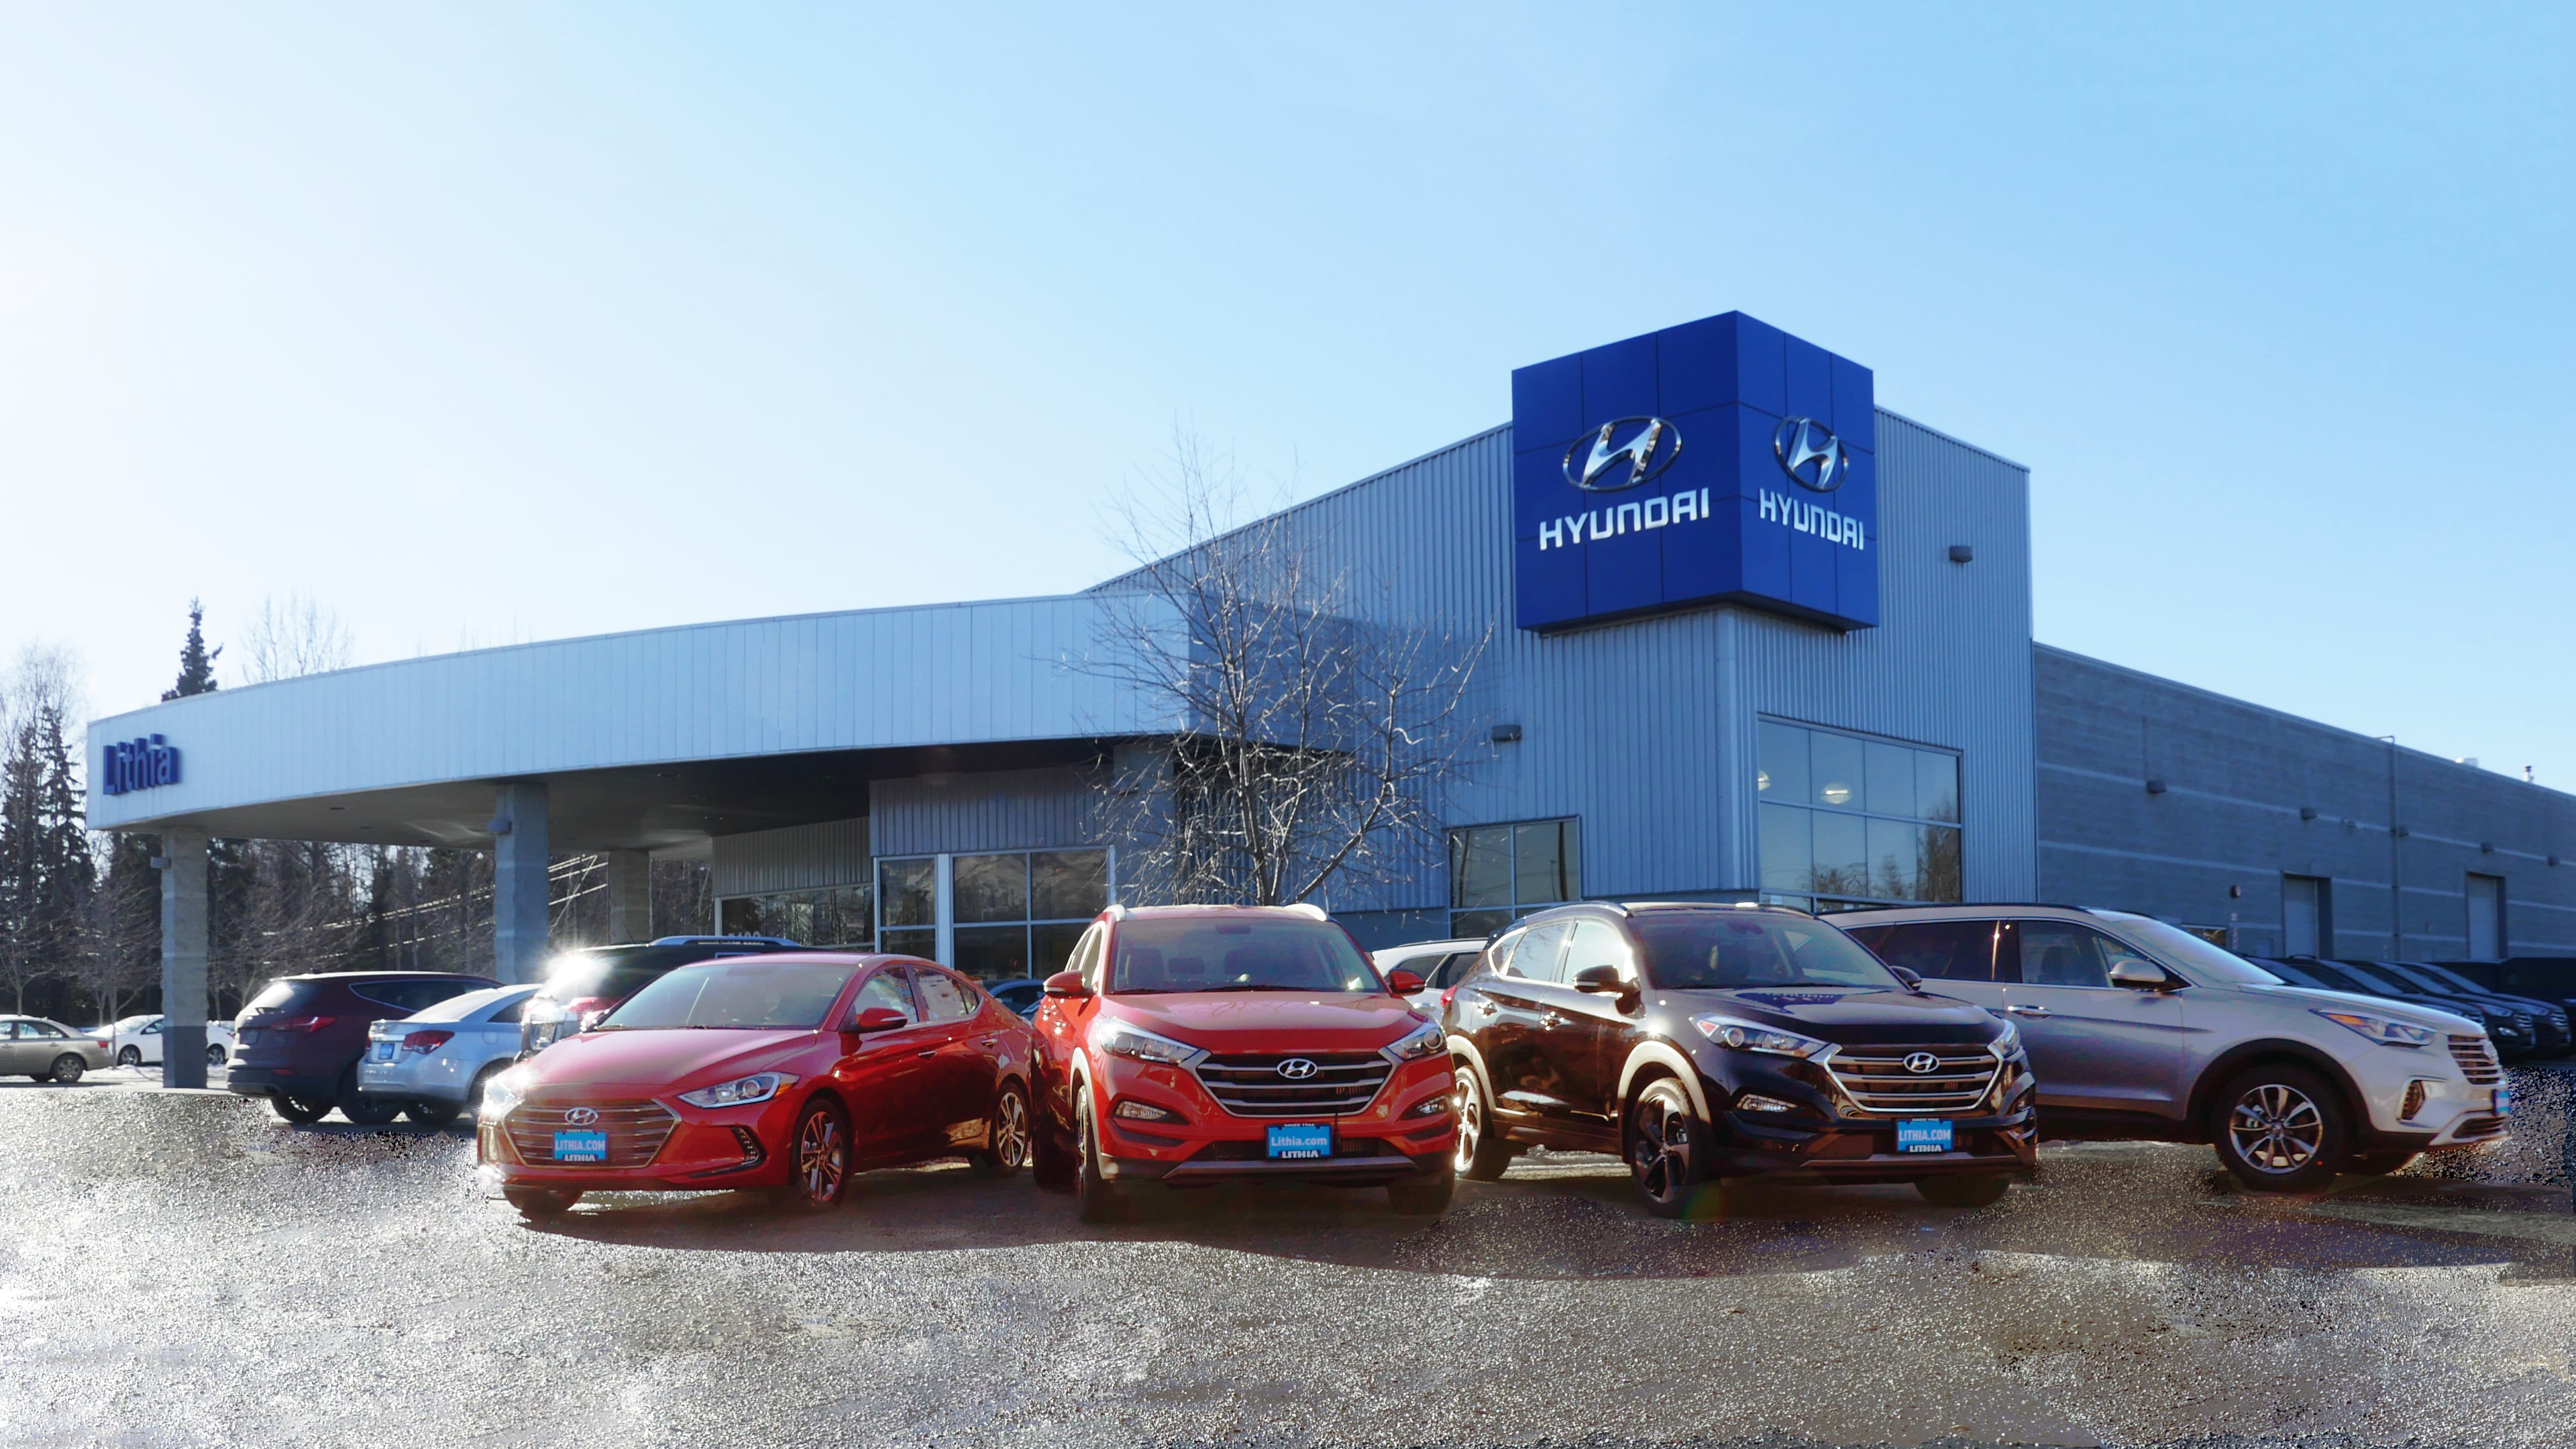 fhyb dealerships elantra used bristol dealer in hyundai previous and web of friendship next new